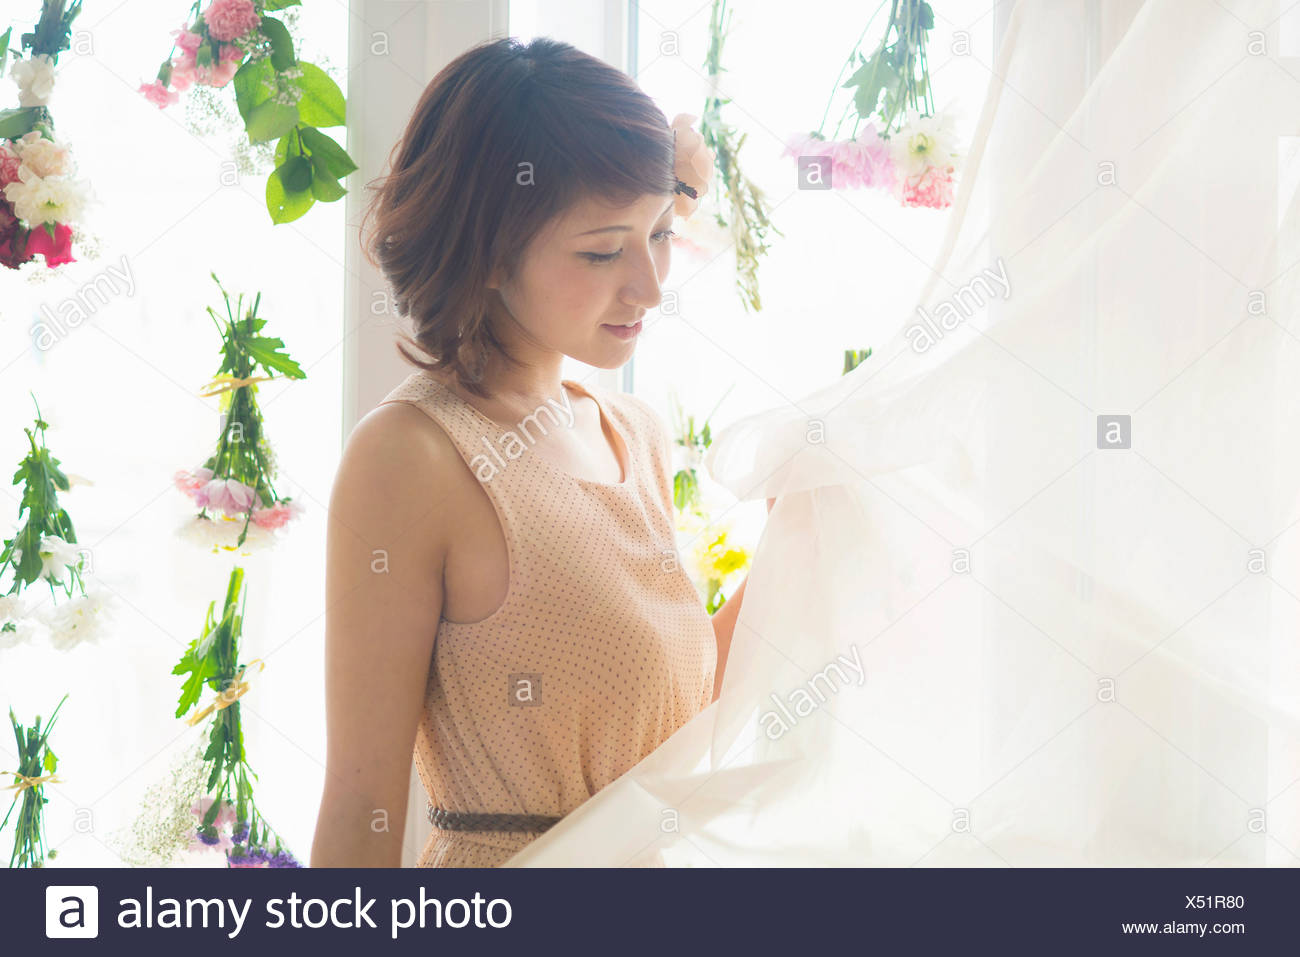 Woman lifting curtains of glass windows with dangling flowers - Stock Image